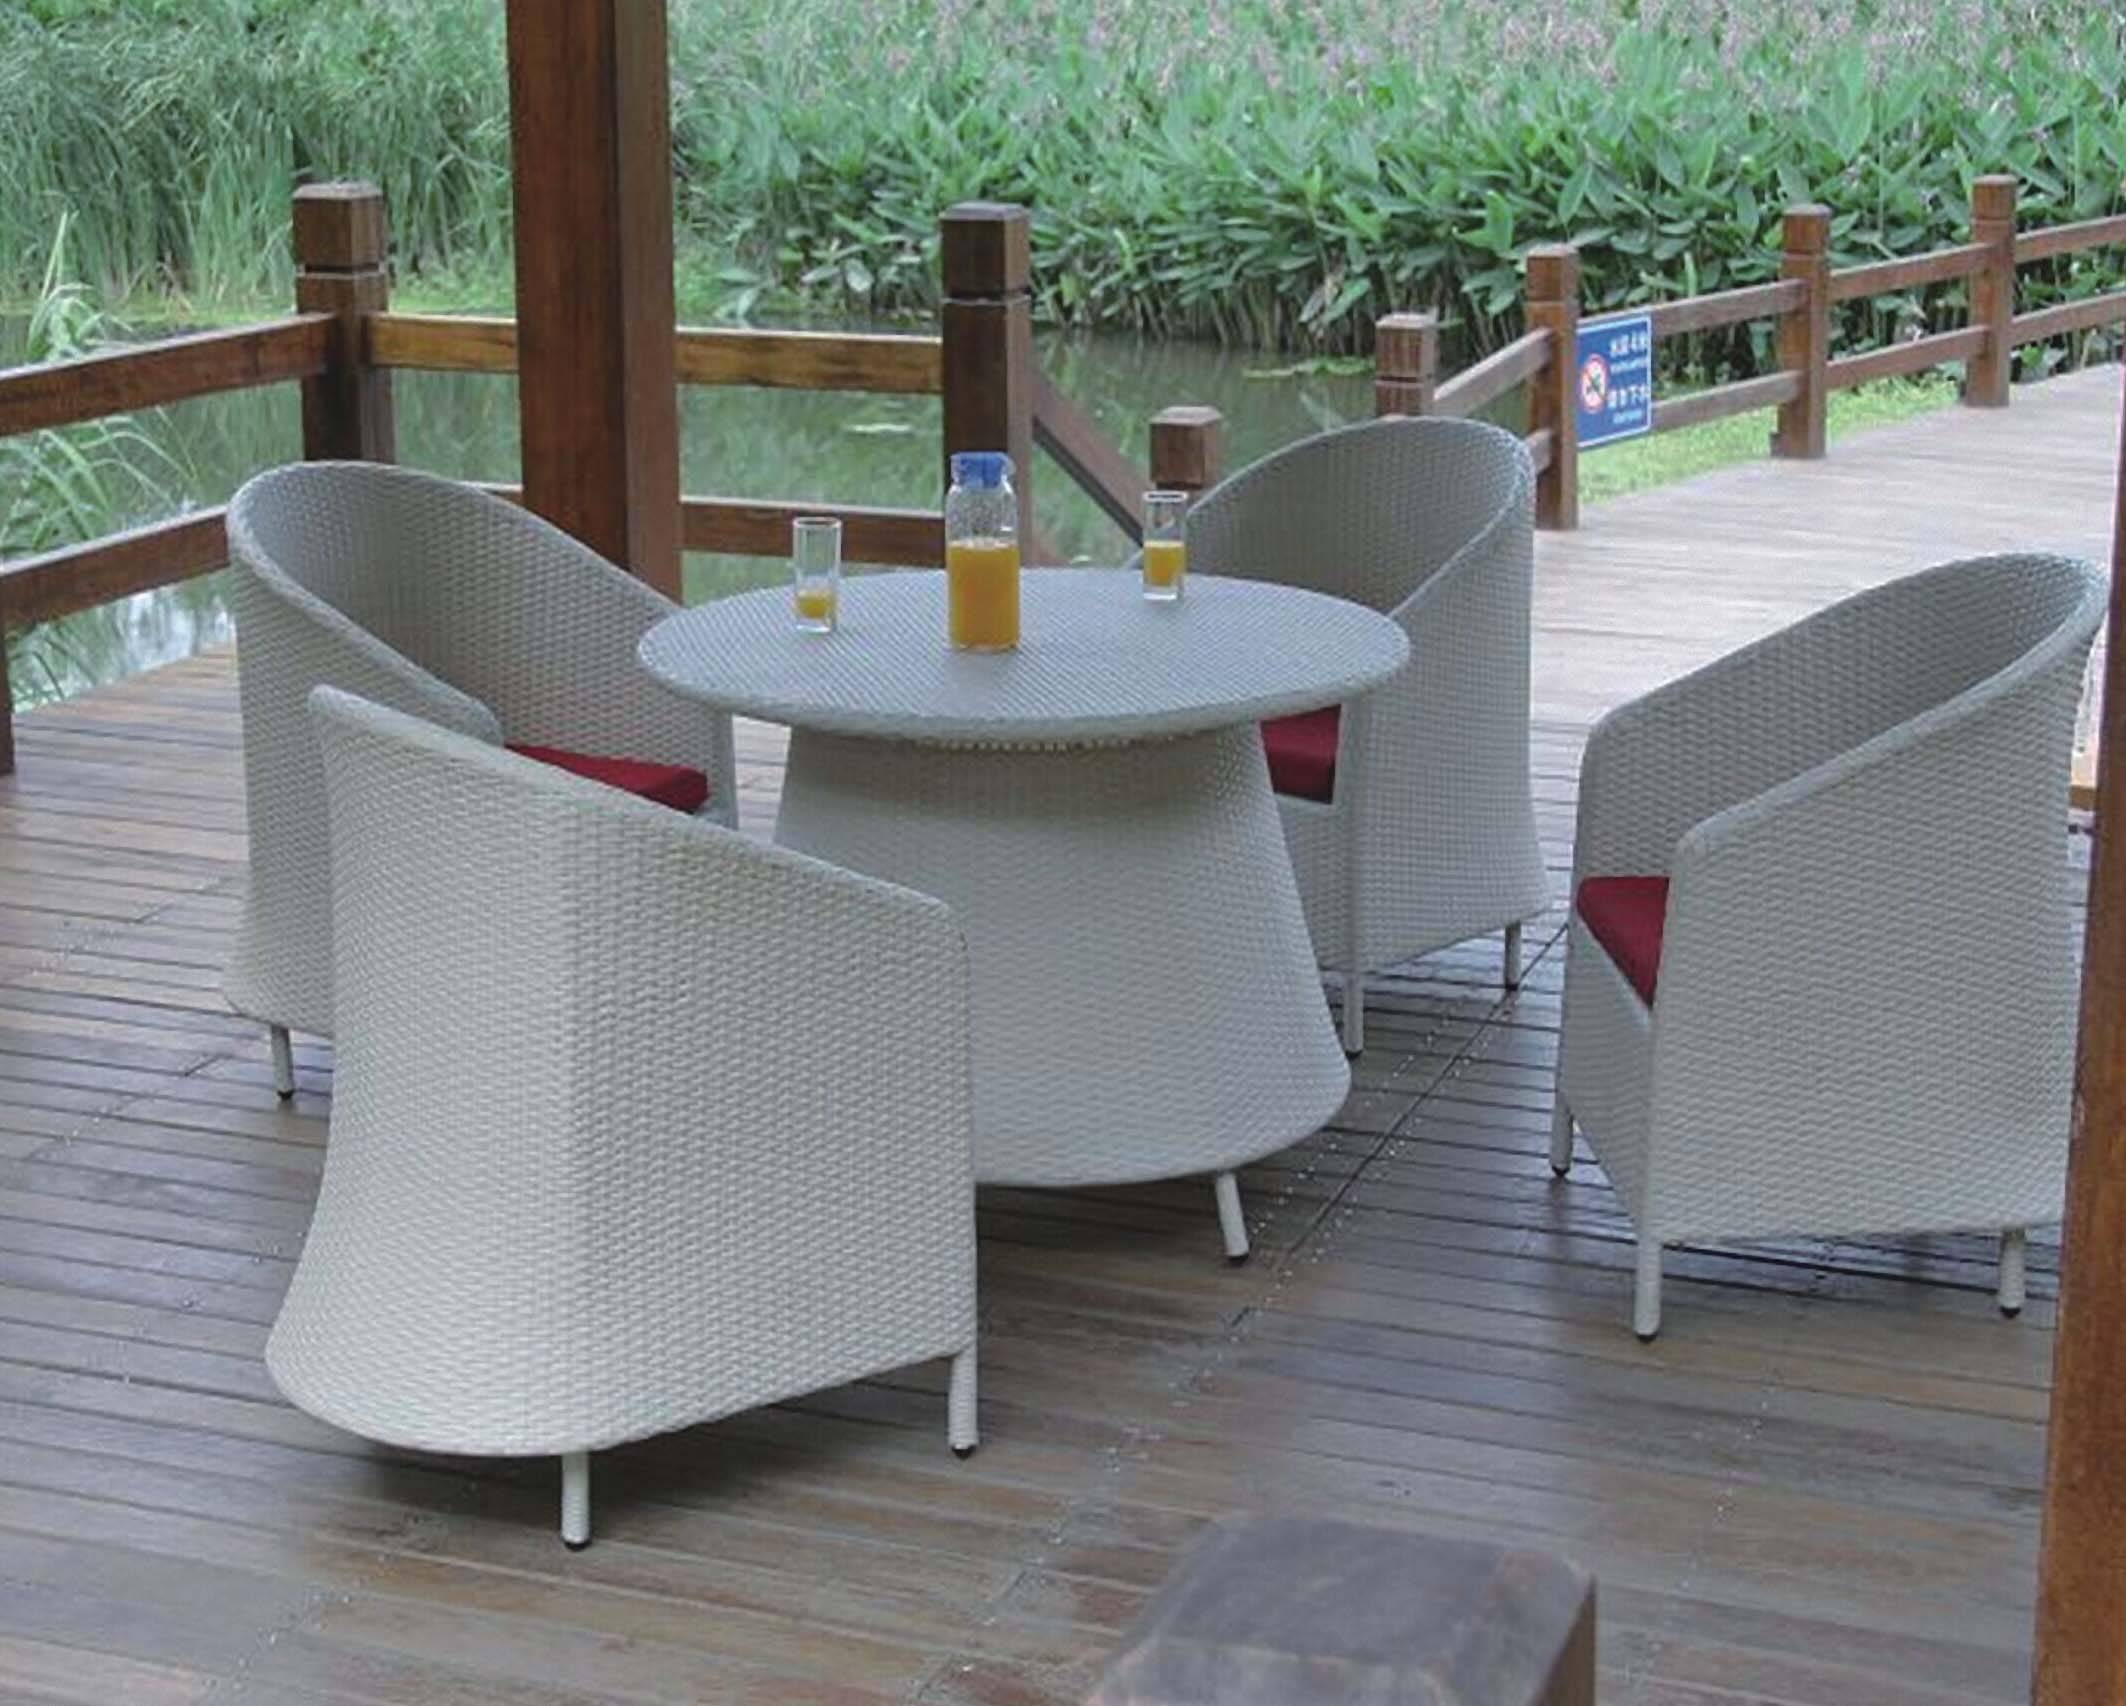 Outdoor dining chair and table, made of rattan woven